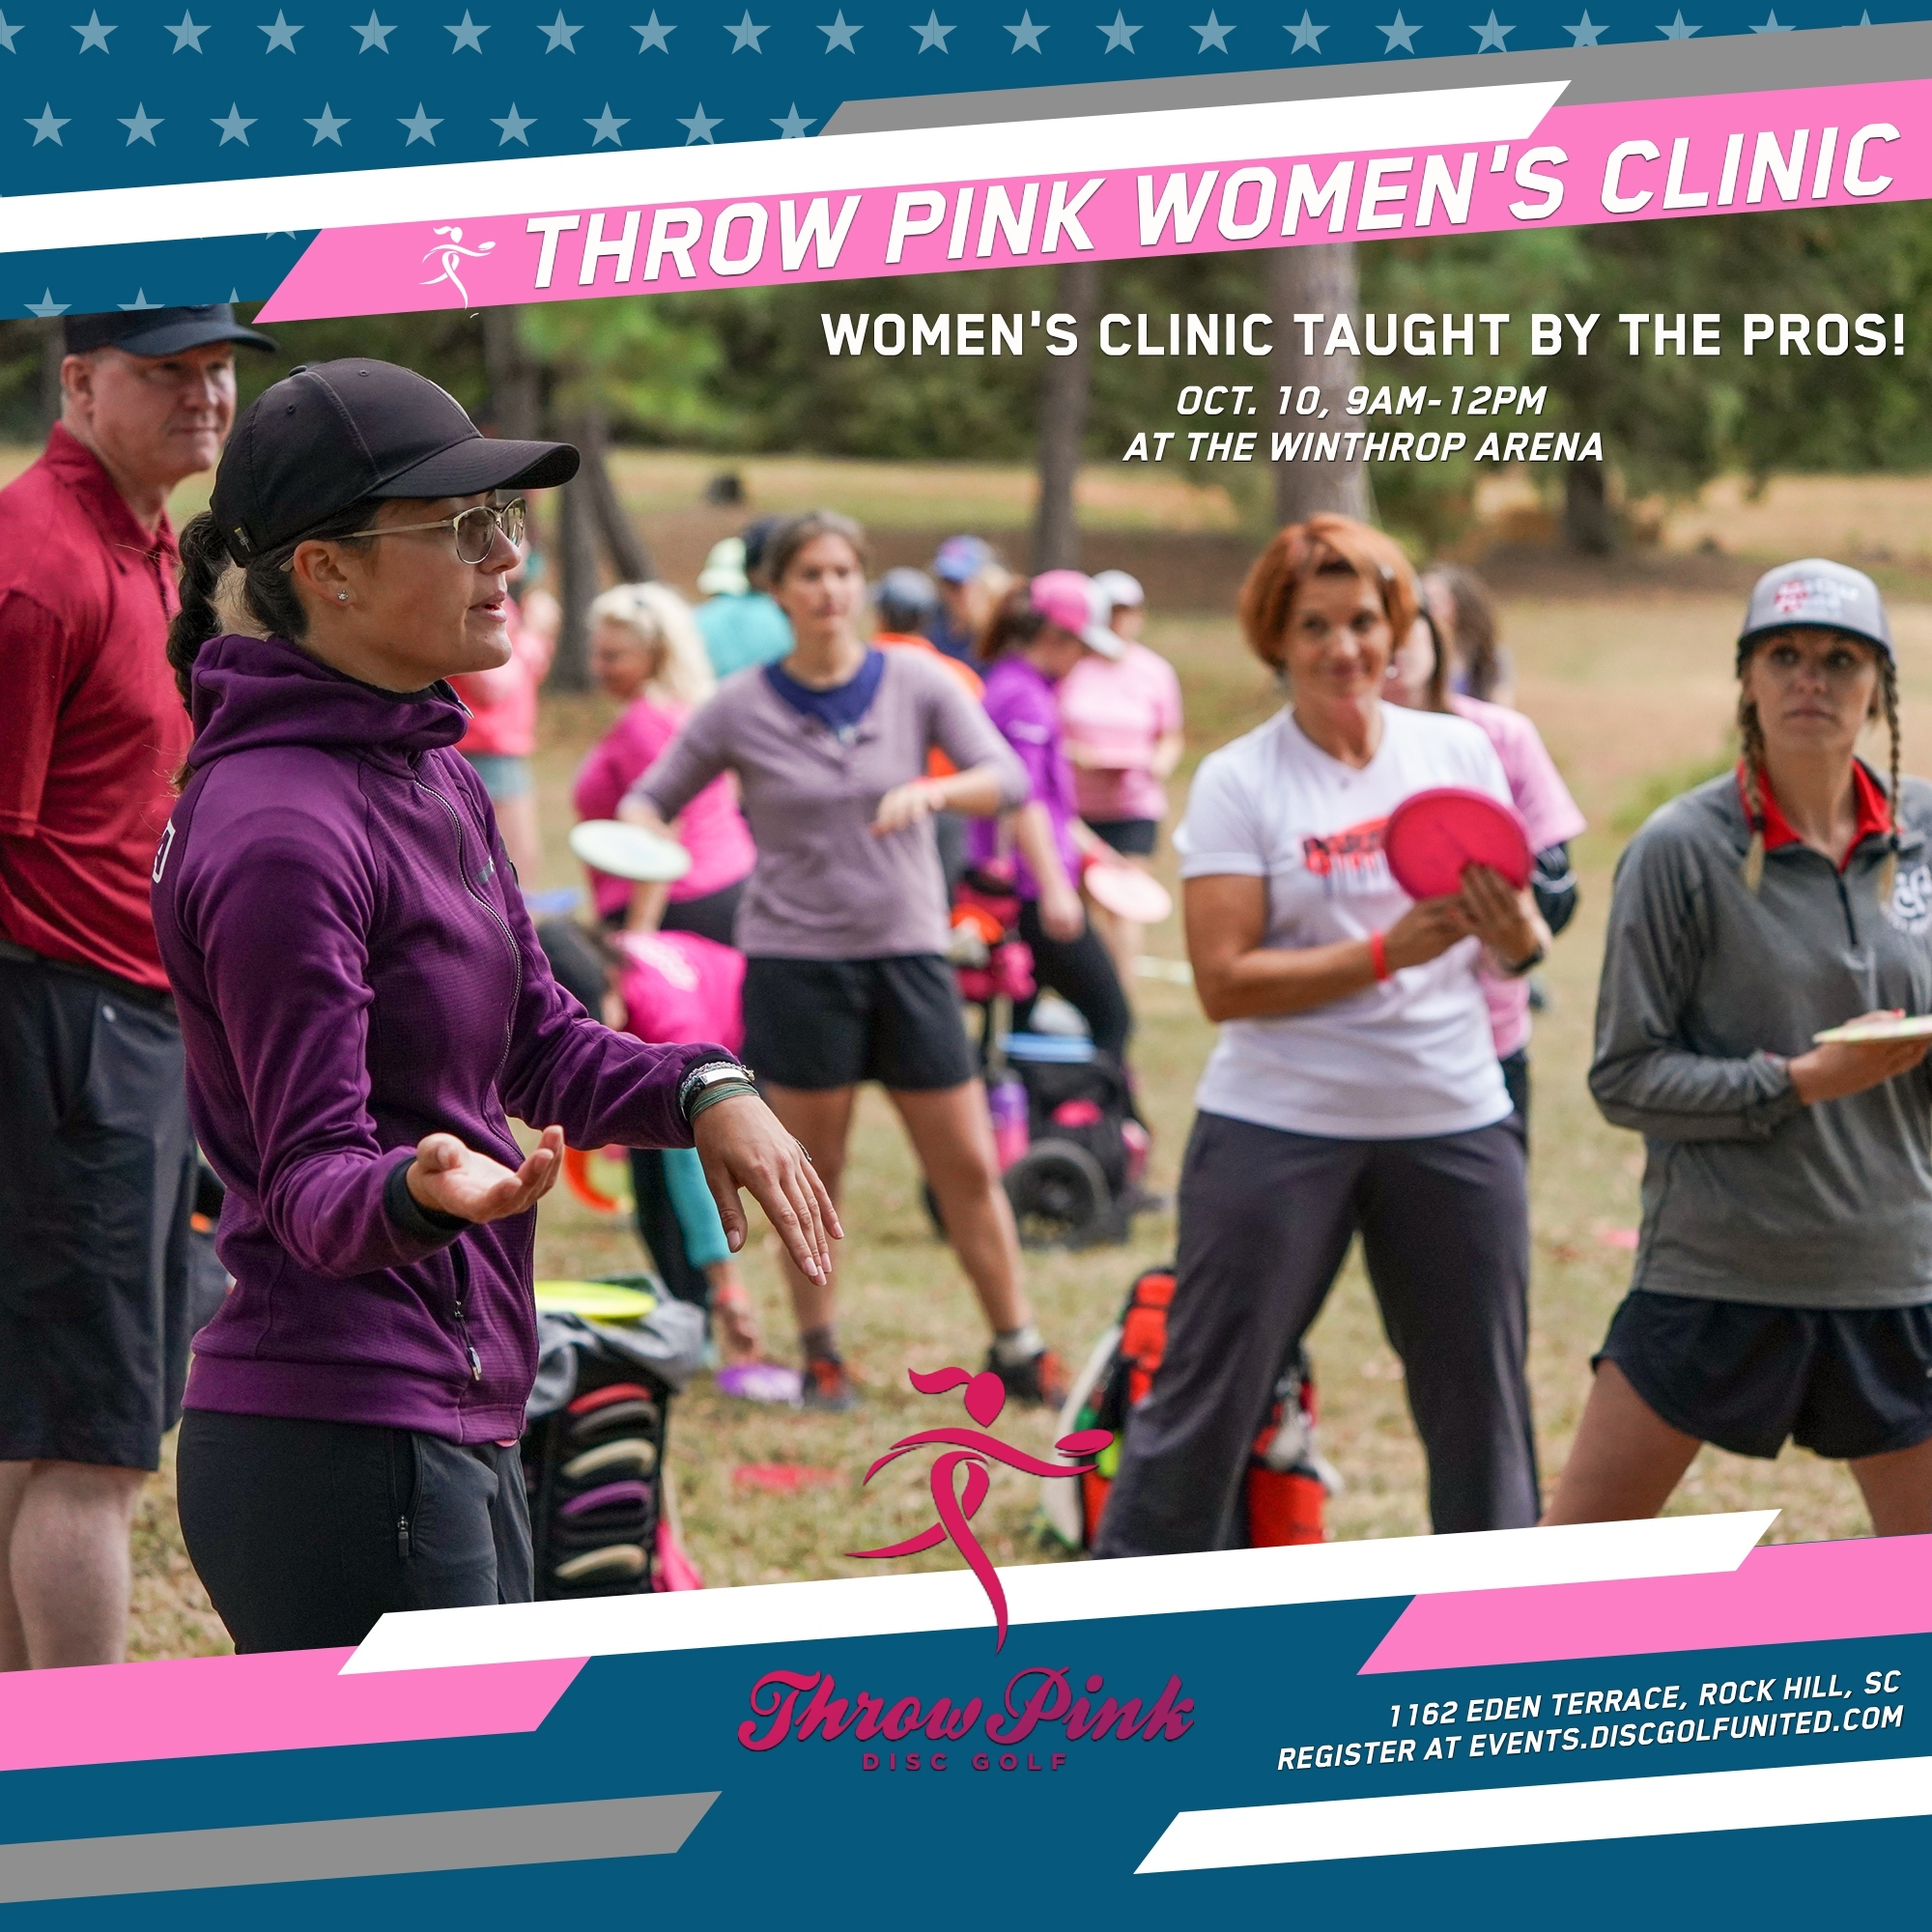 The flyer for the Throw Pink Clinic at the Championship 2021.